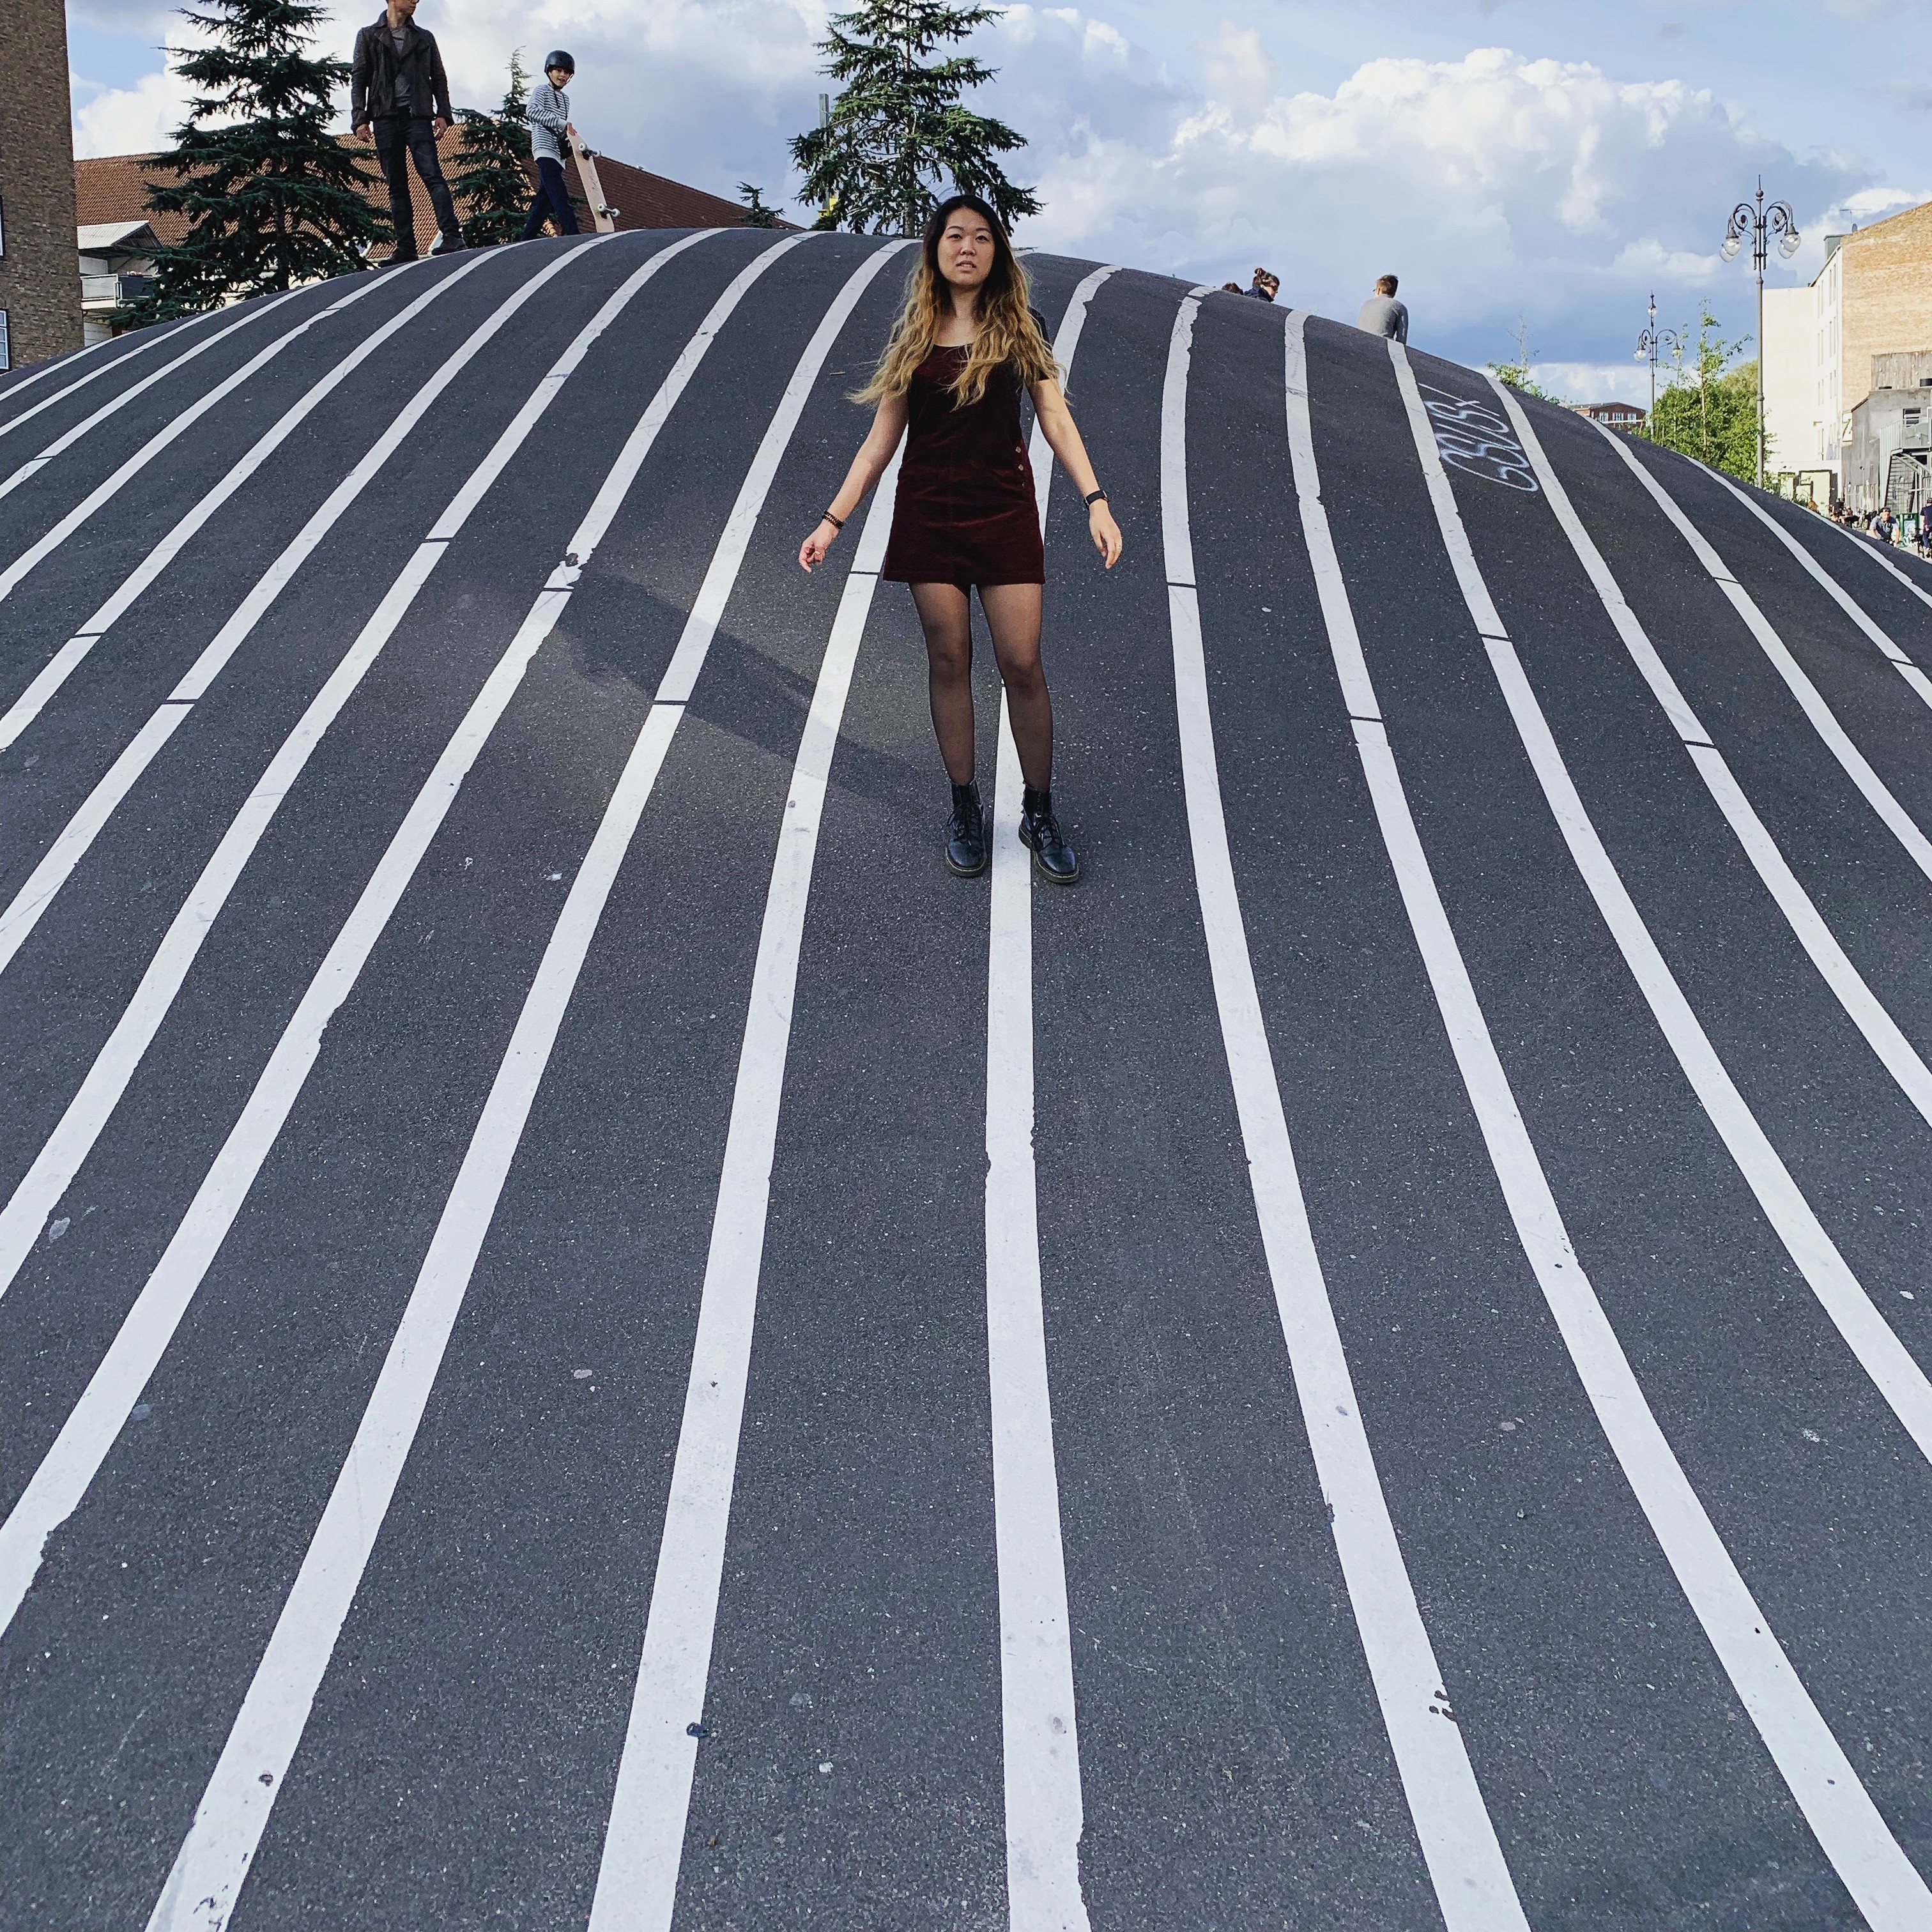 Girl standing on hill made of pavement with vertical white lines